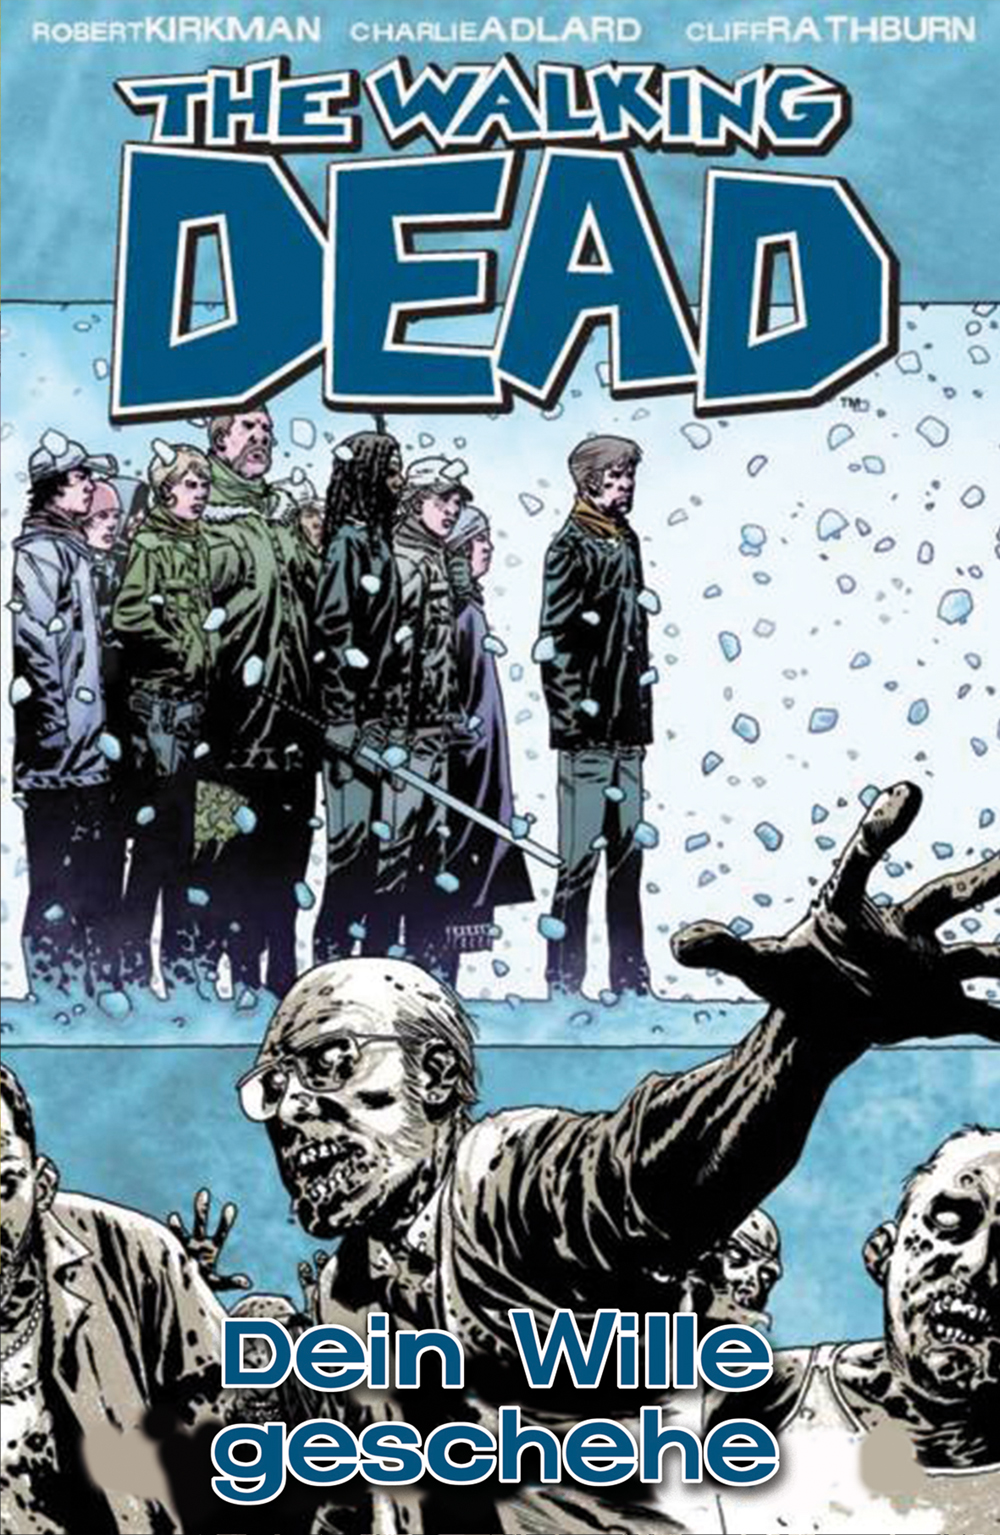 The Walking Dead - Dein Wille geschehe Robert Kirkman